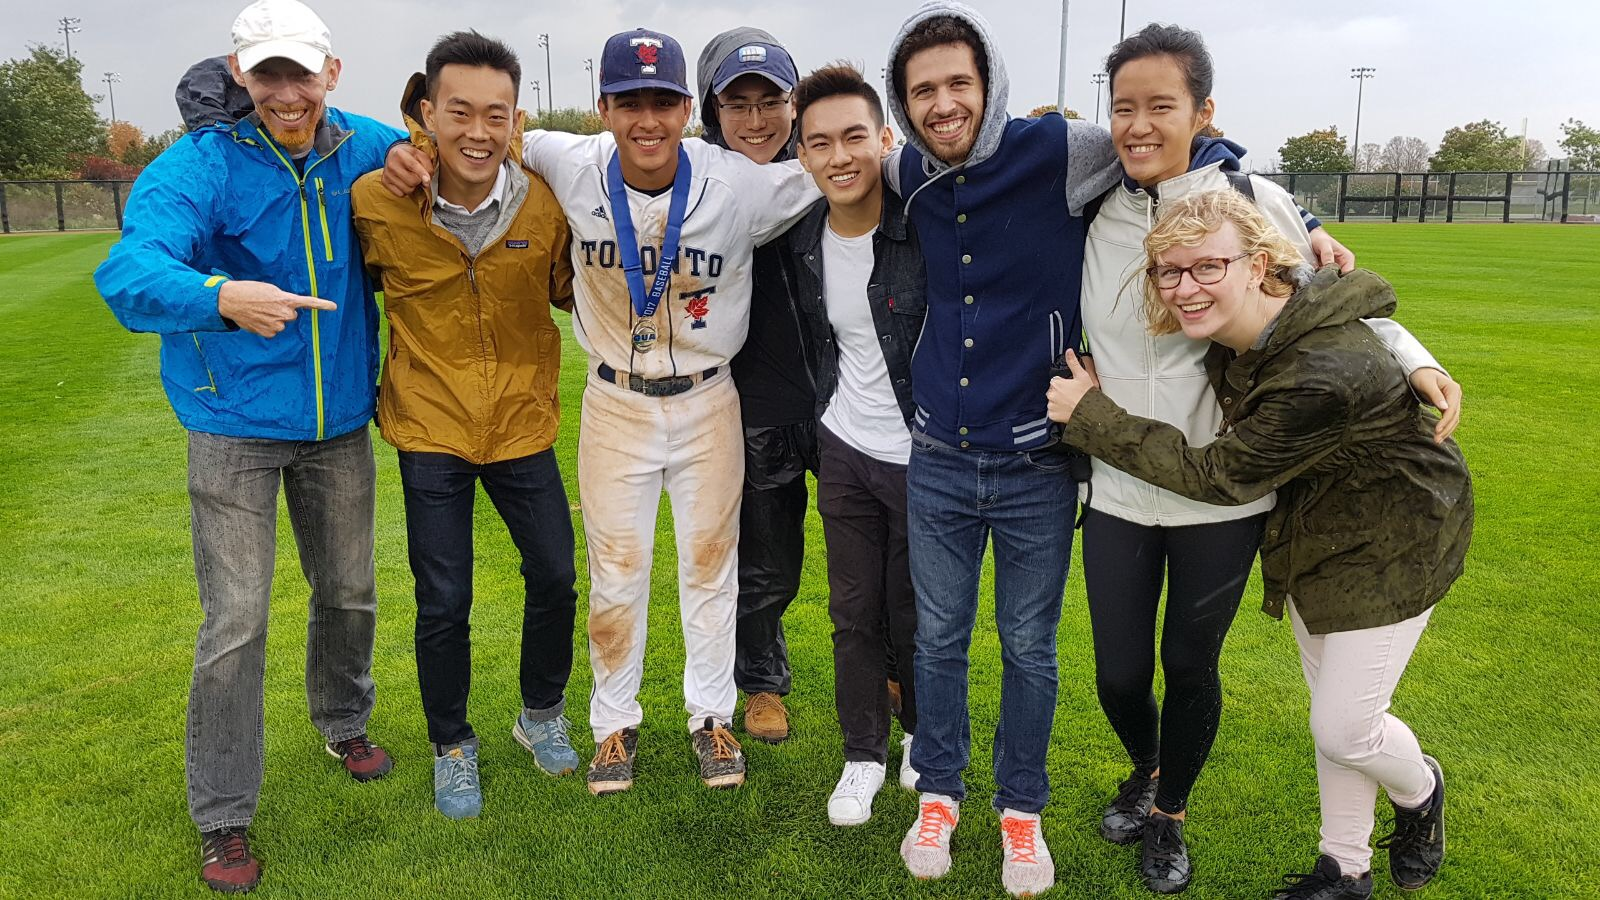 A smiling group of people stands around a baseball player.